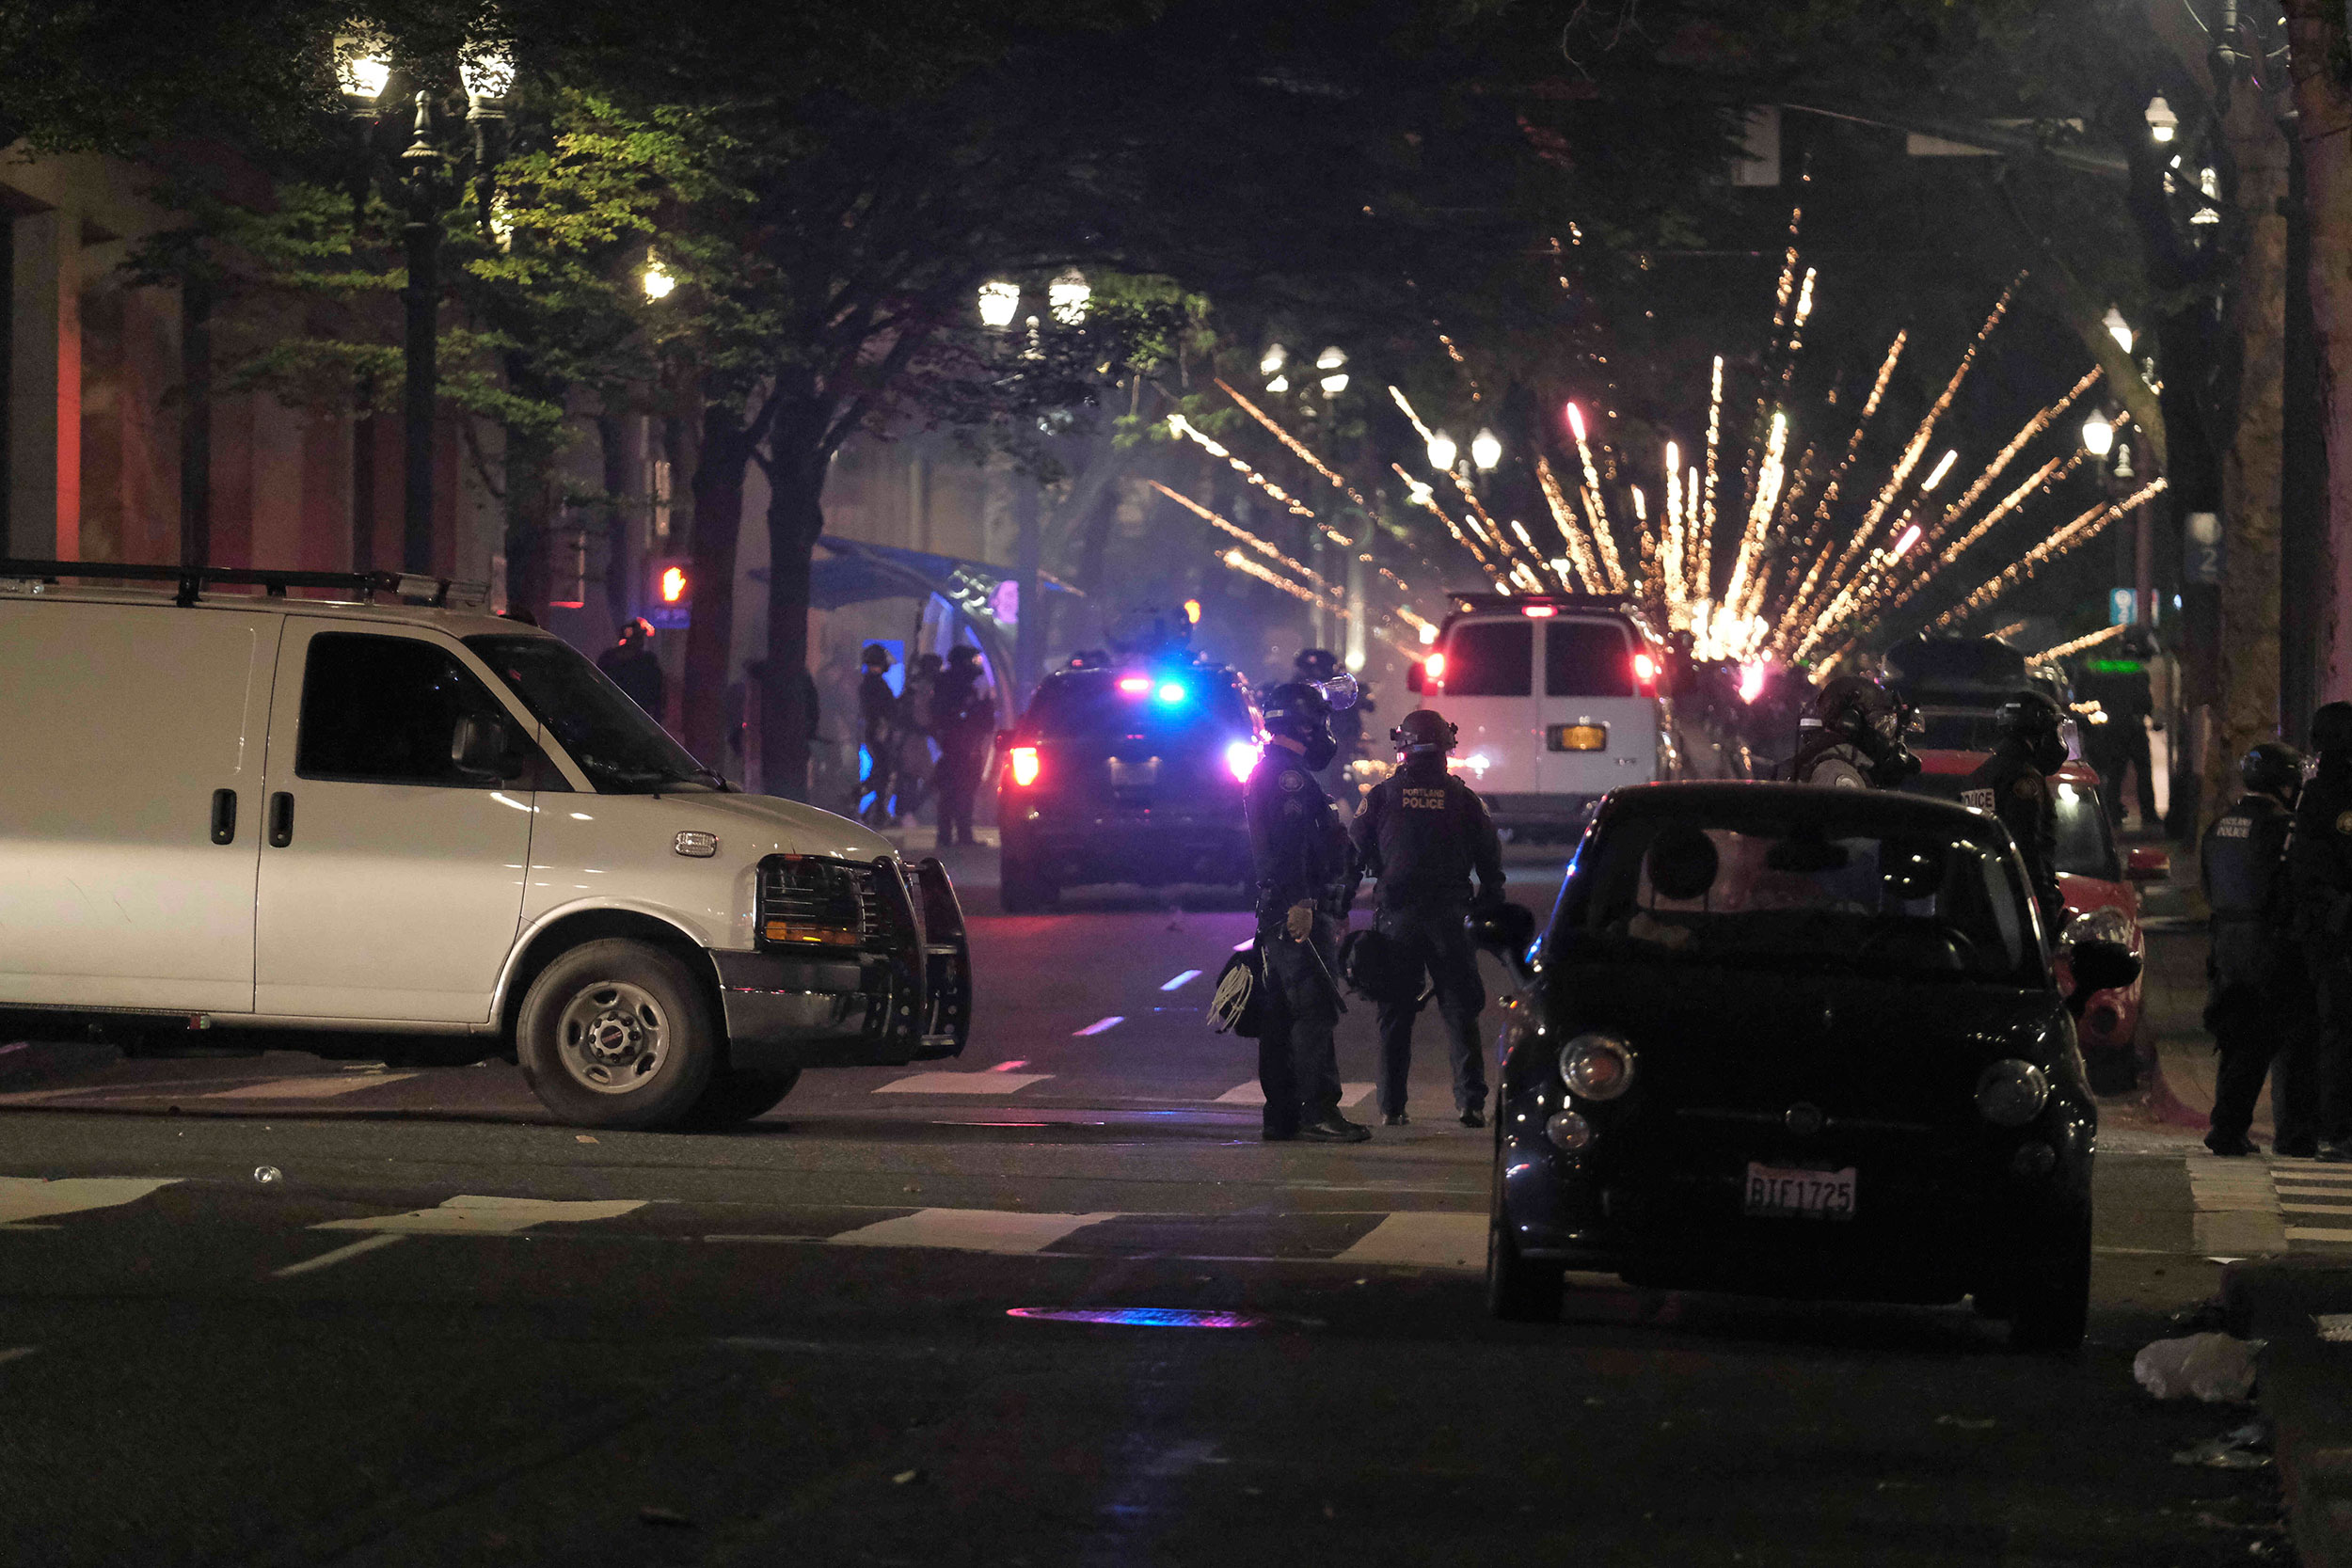 Portland demonstration declared a riot after protesters launch fireworks at federal courthouse